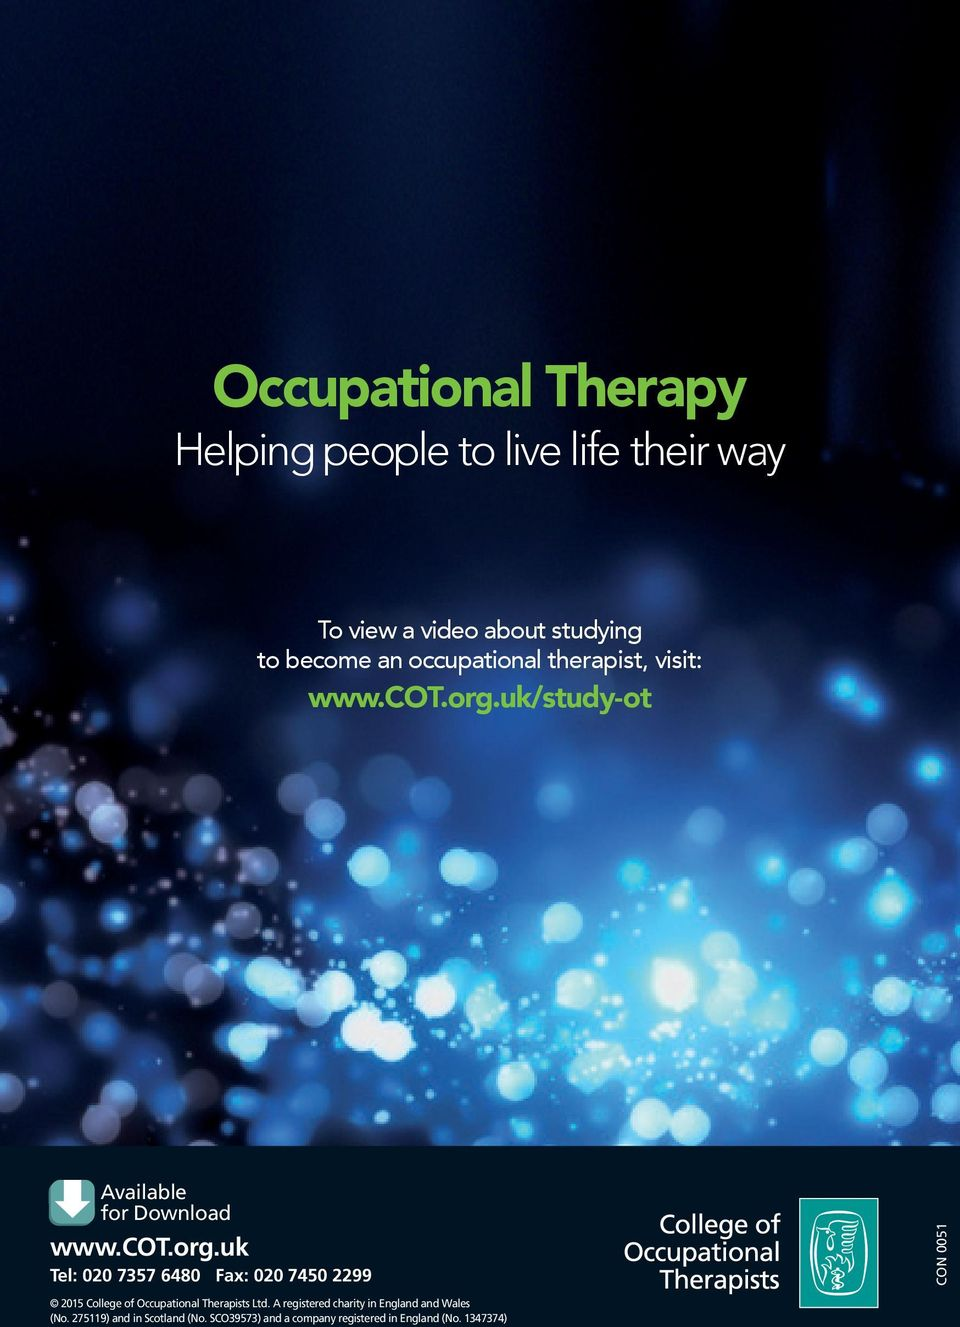 cot.org.uk Tel: 020 Download 7357 6480 for Fax: 020 7450 2299 BAOT members 2015 College of Occupational Therapists Ltd.